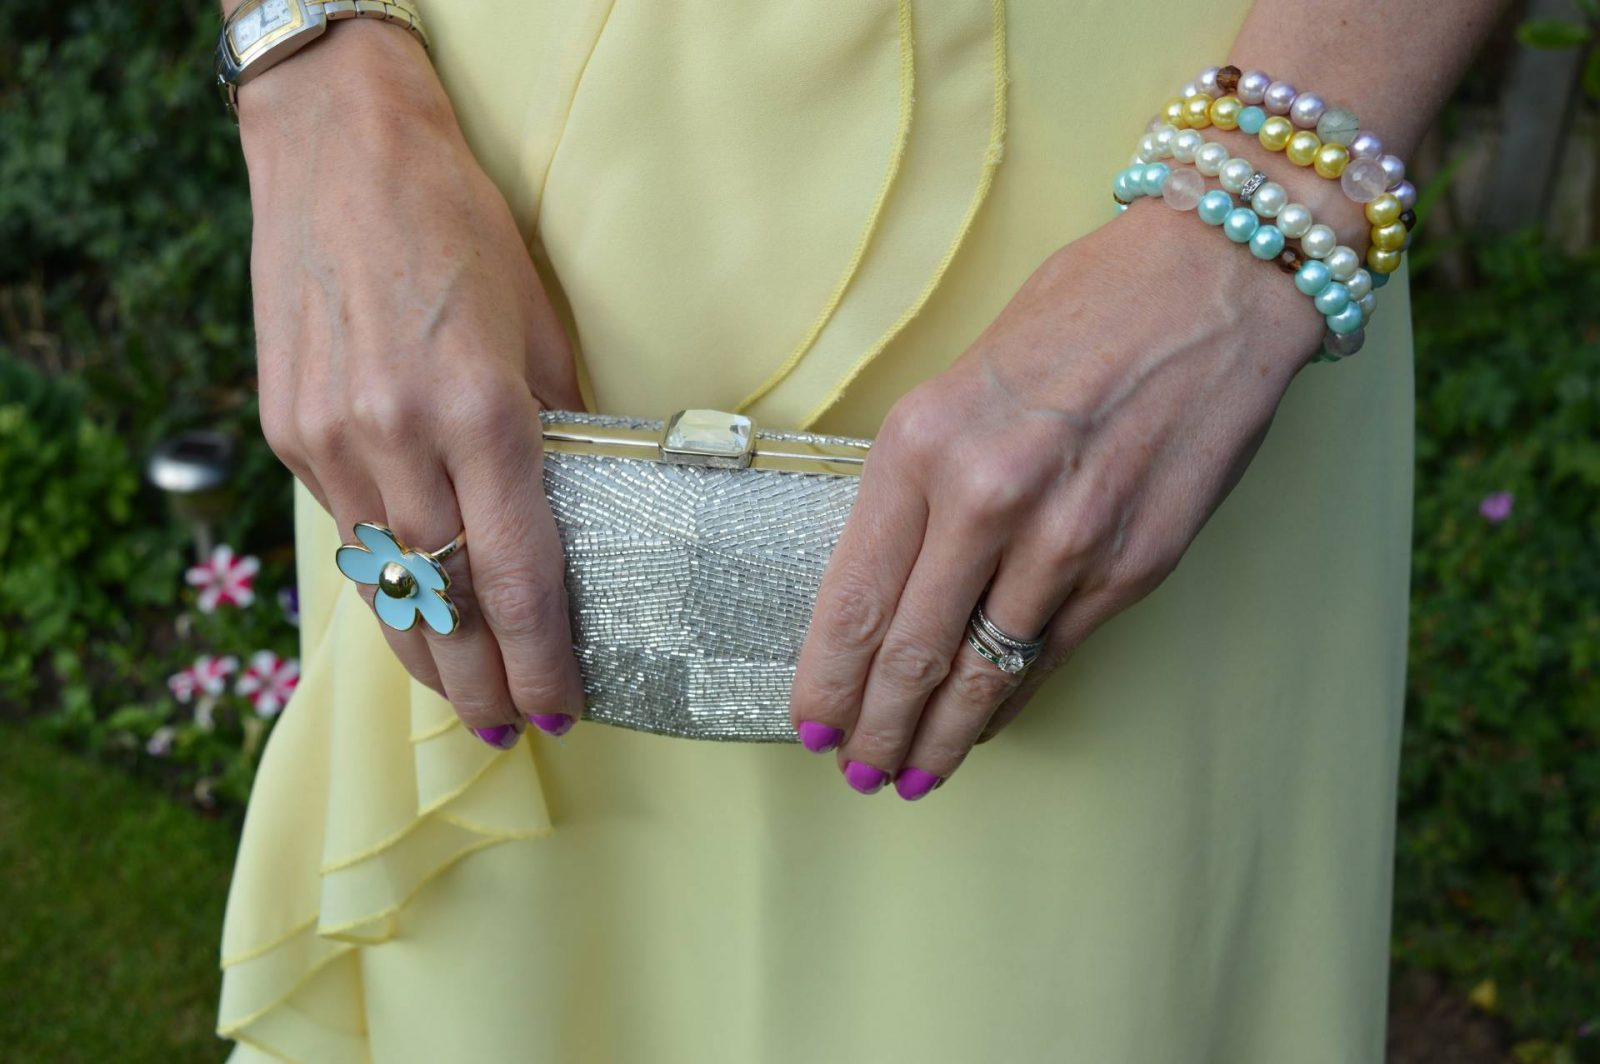 Wedding Guest Dresses From PrettyLittleThing Accessorize silver beaded clutch